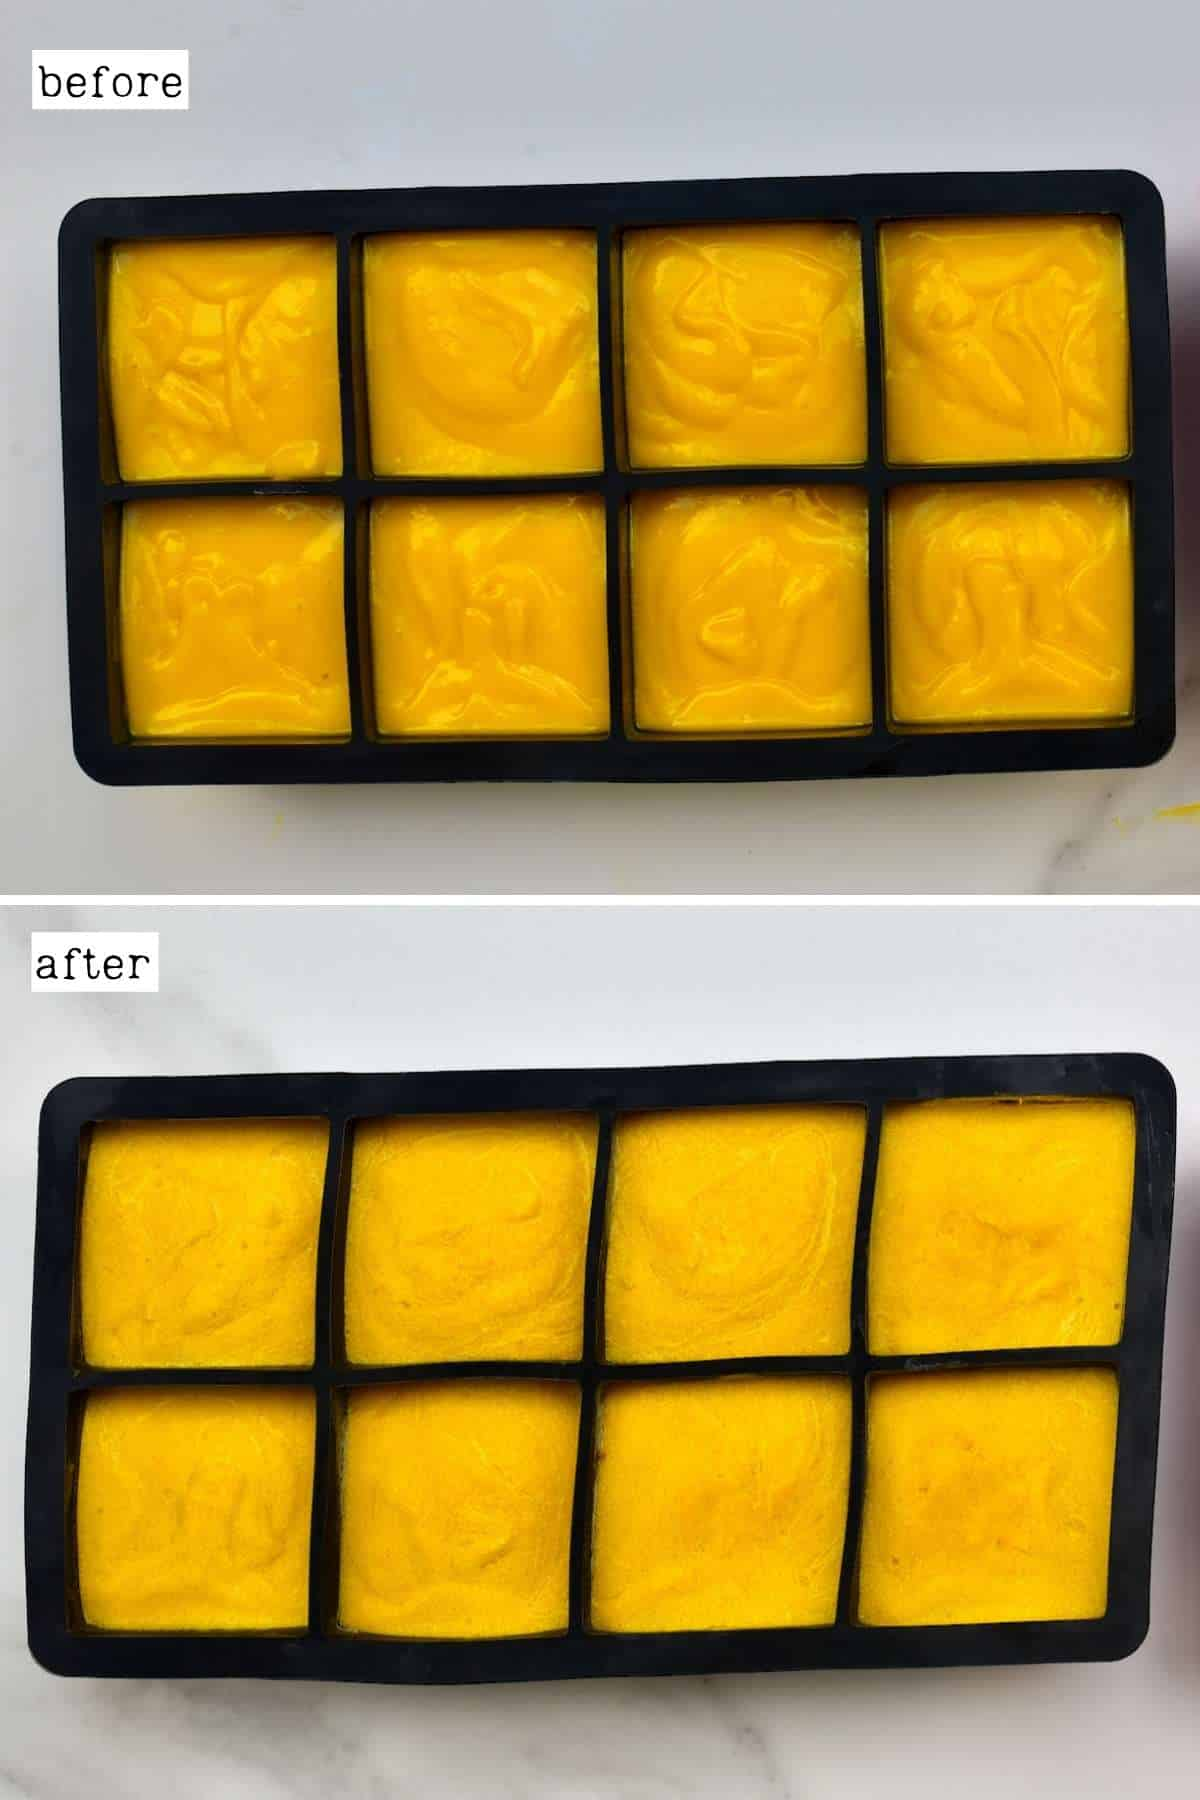 Before and after freezing mango puree